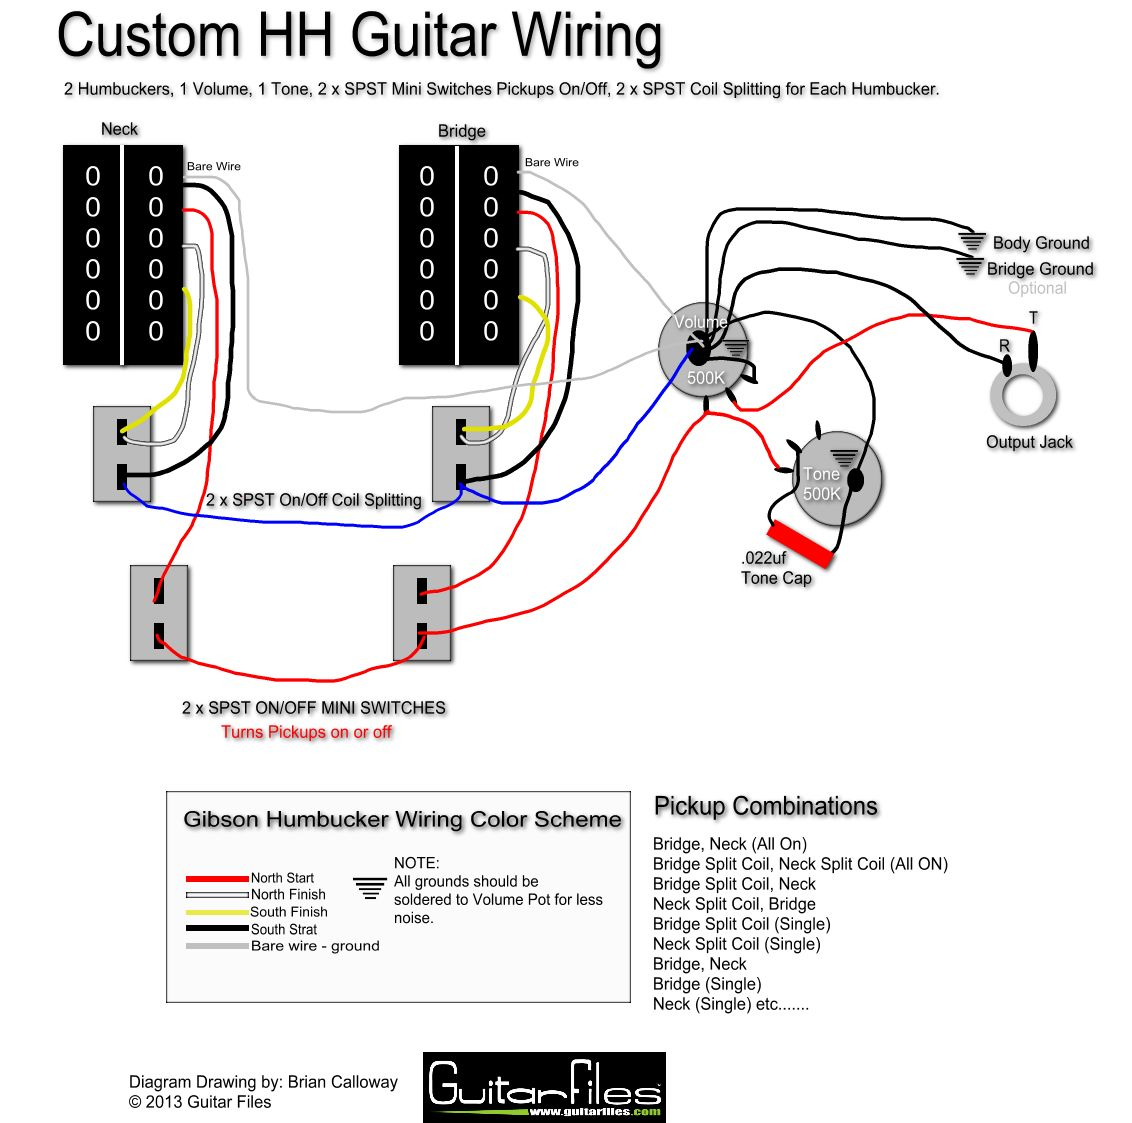 Hh Pickup Wiring Diagram Nice Place To Get Seymour Duncan Jaguar Custom With Spst Coil Splitting And Switching Rh Pinterest Com Humbucker Ibanez